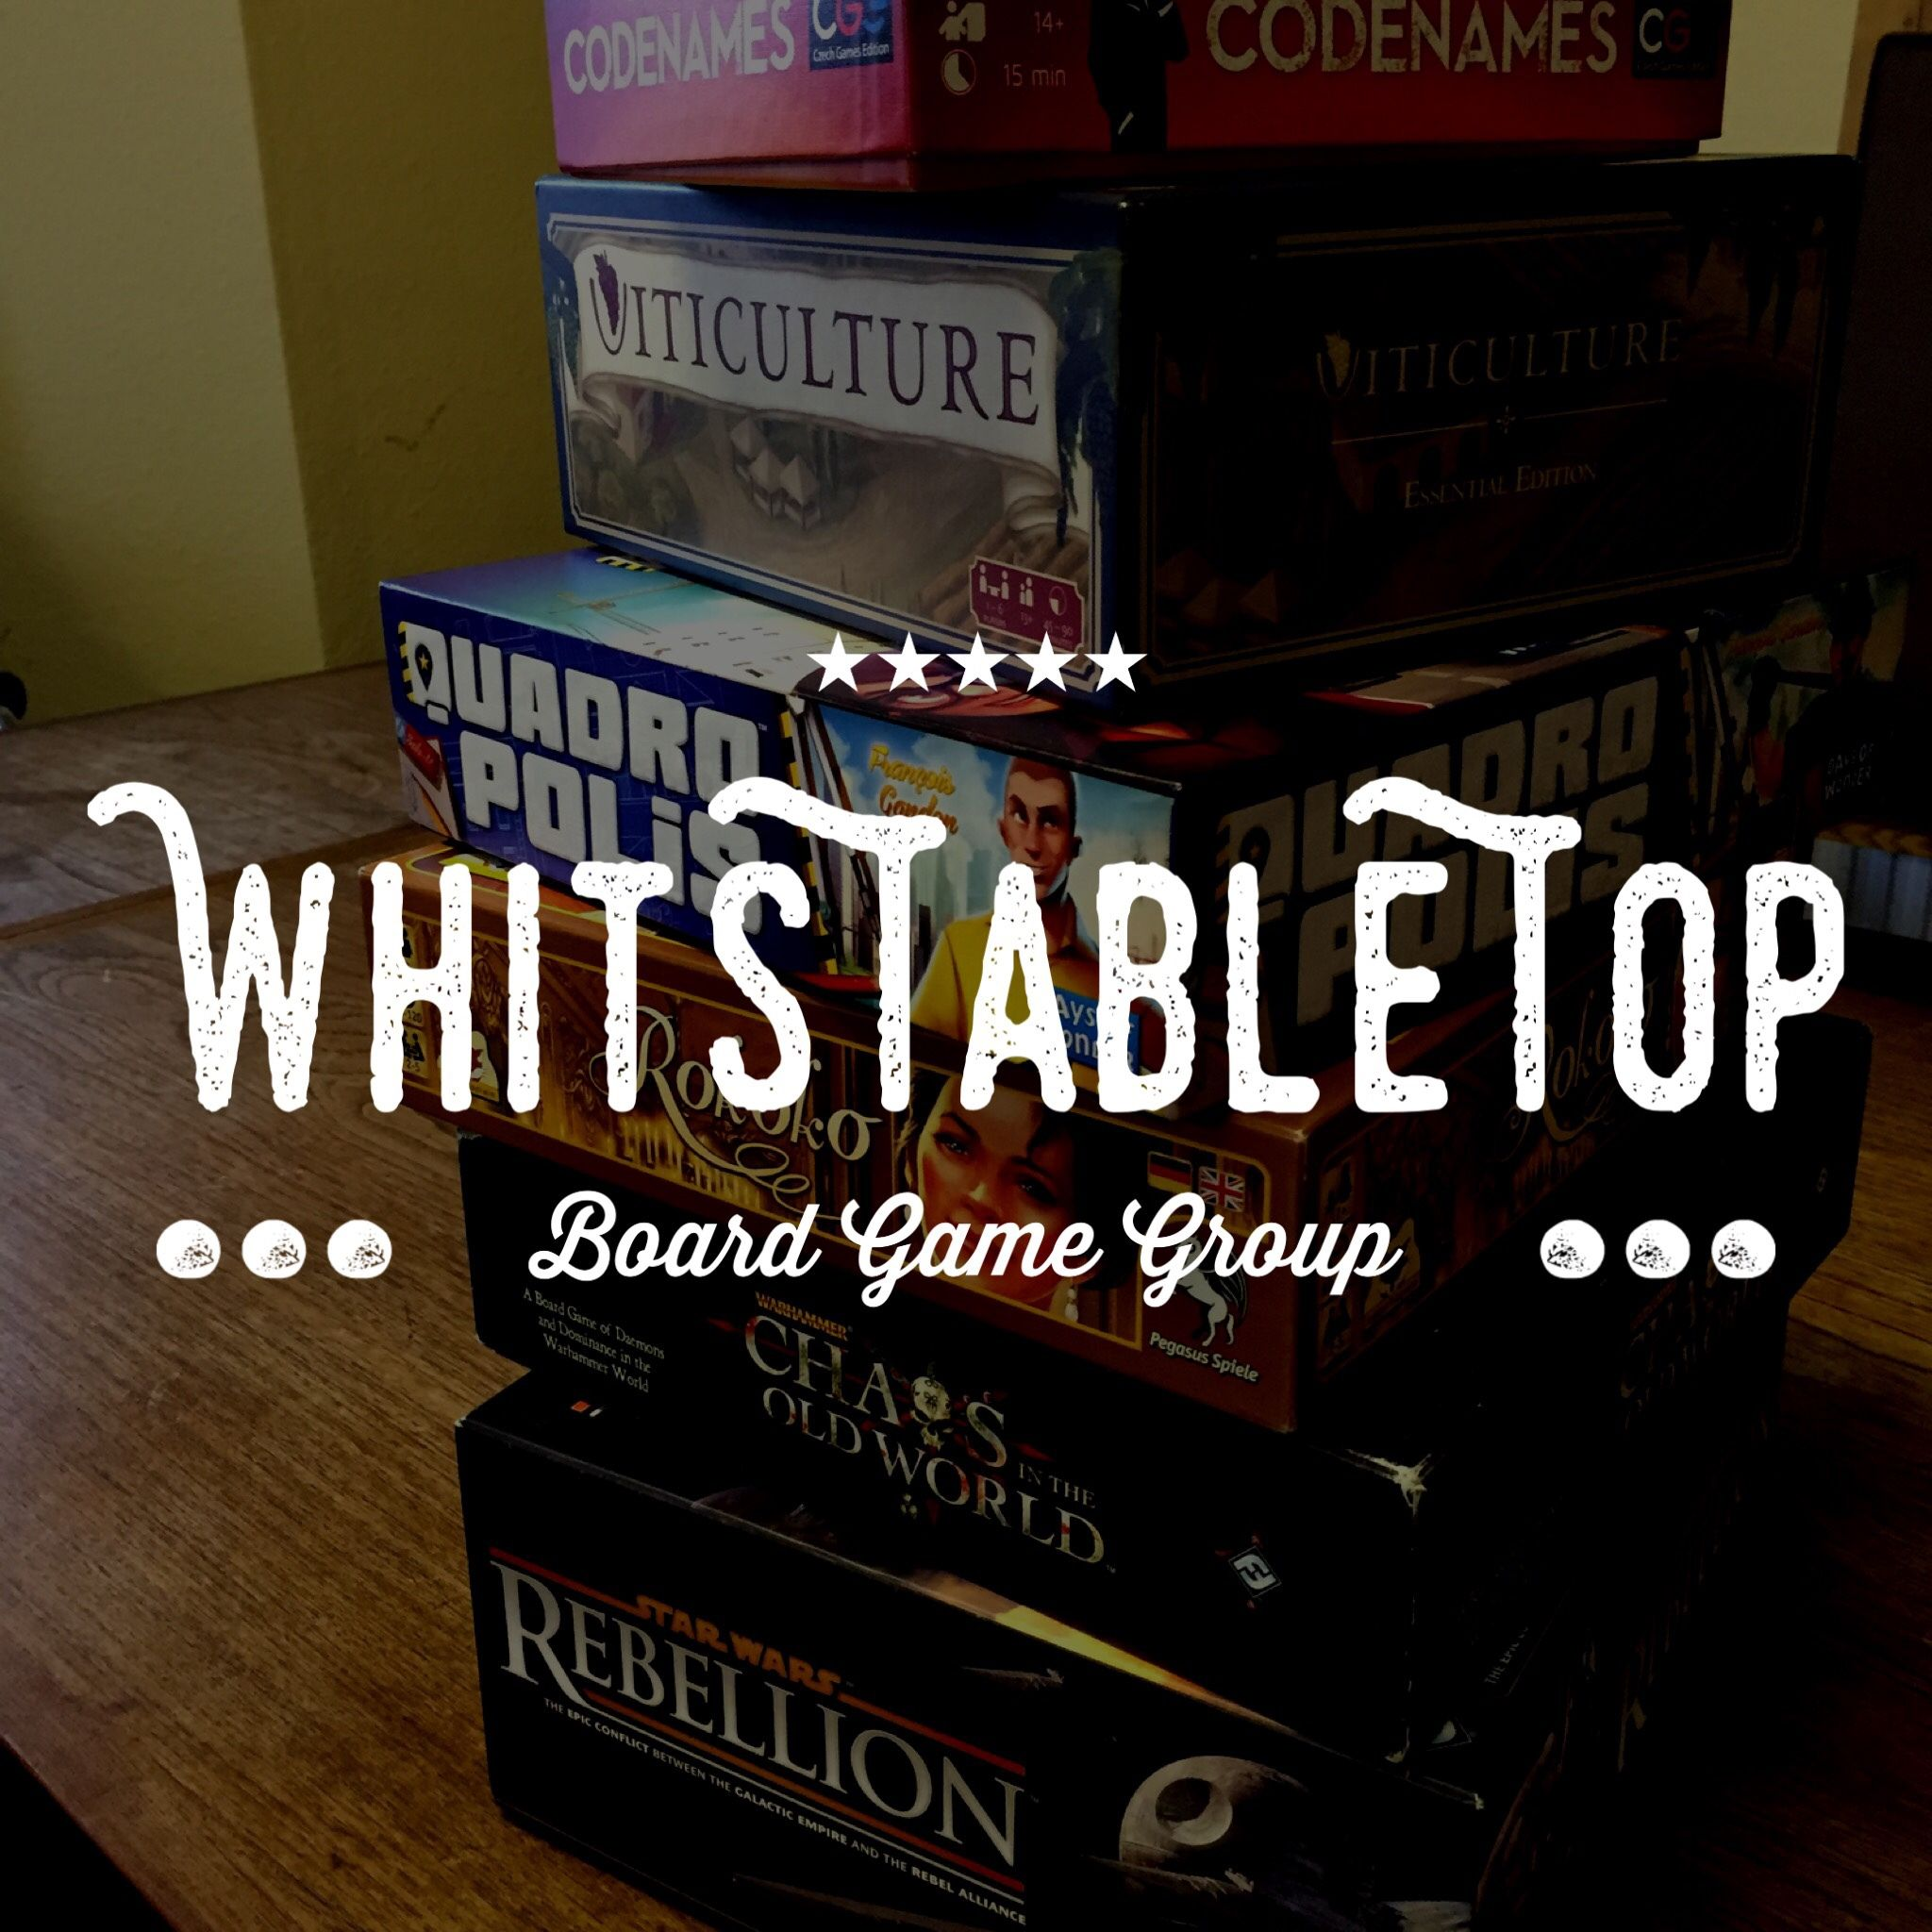 WhitsTableTop - Canterbury & Whitstable Board Game Group